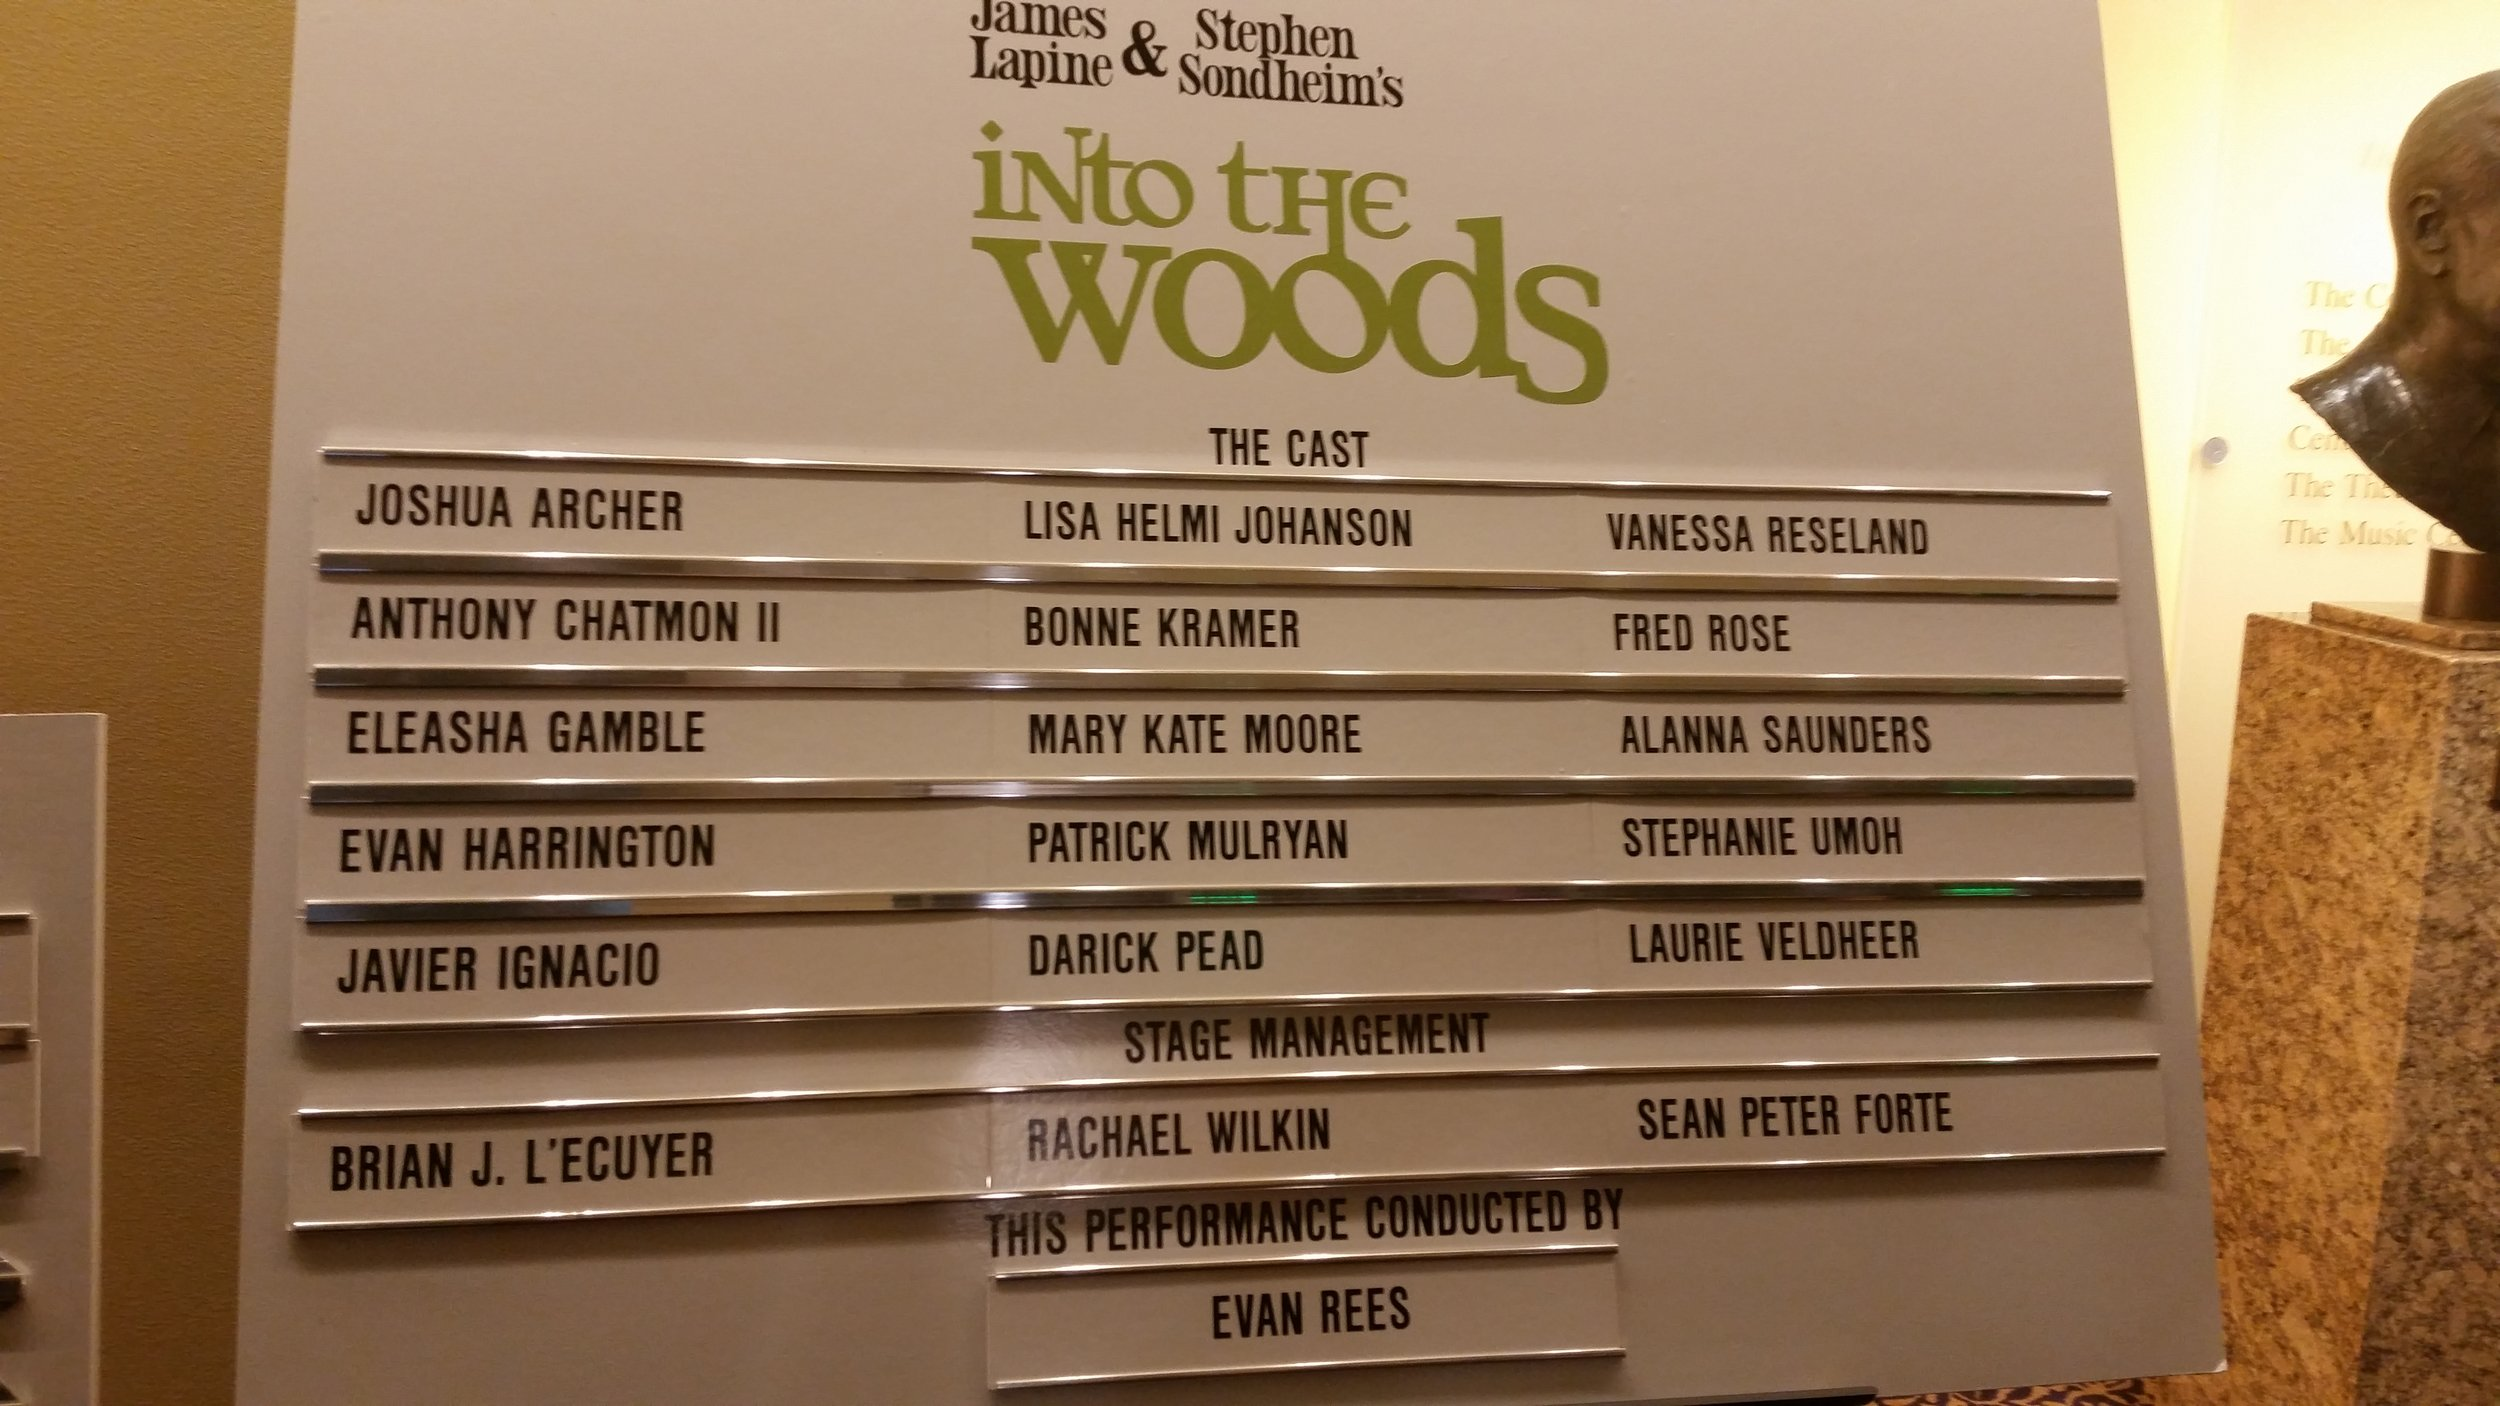 2017 May - Into The Woods tour - Alanna board.jpg